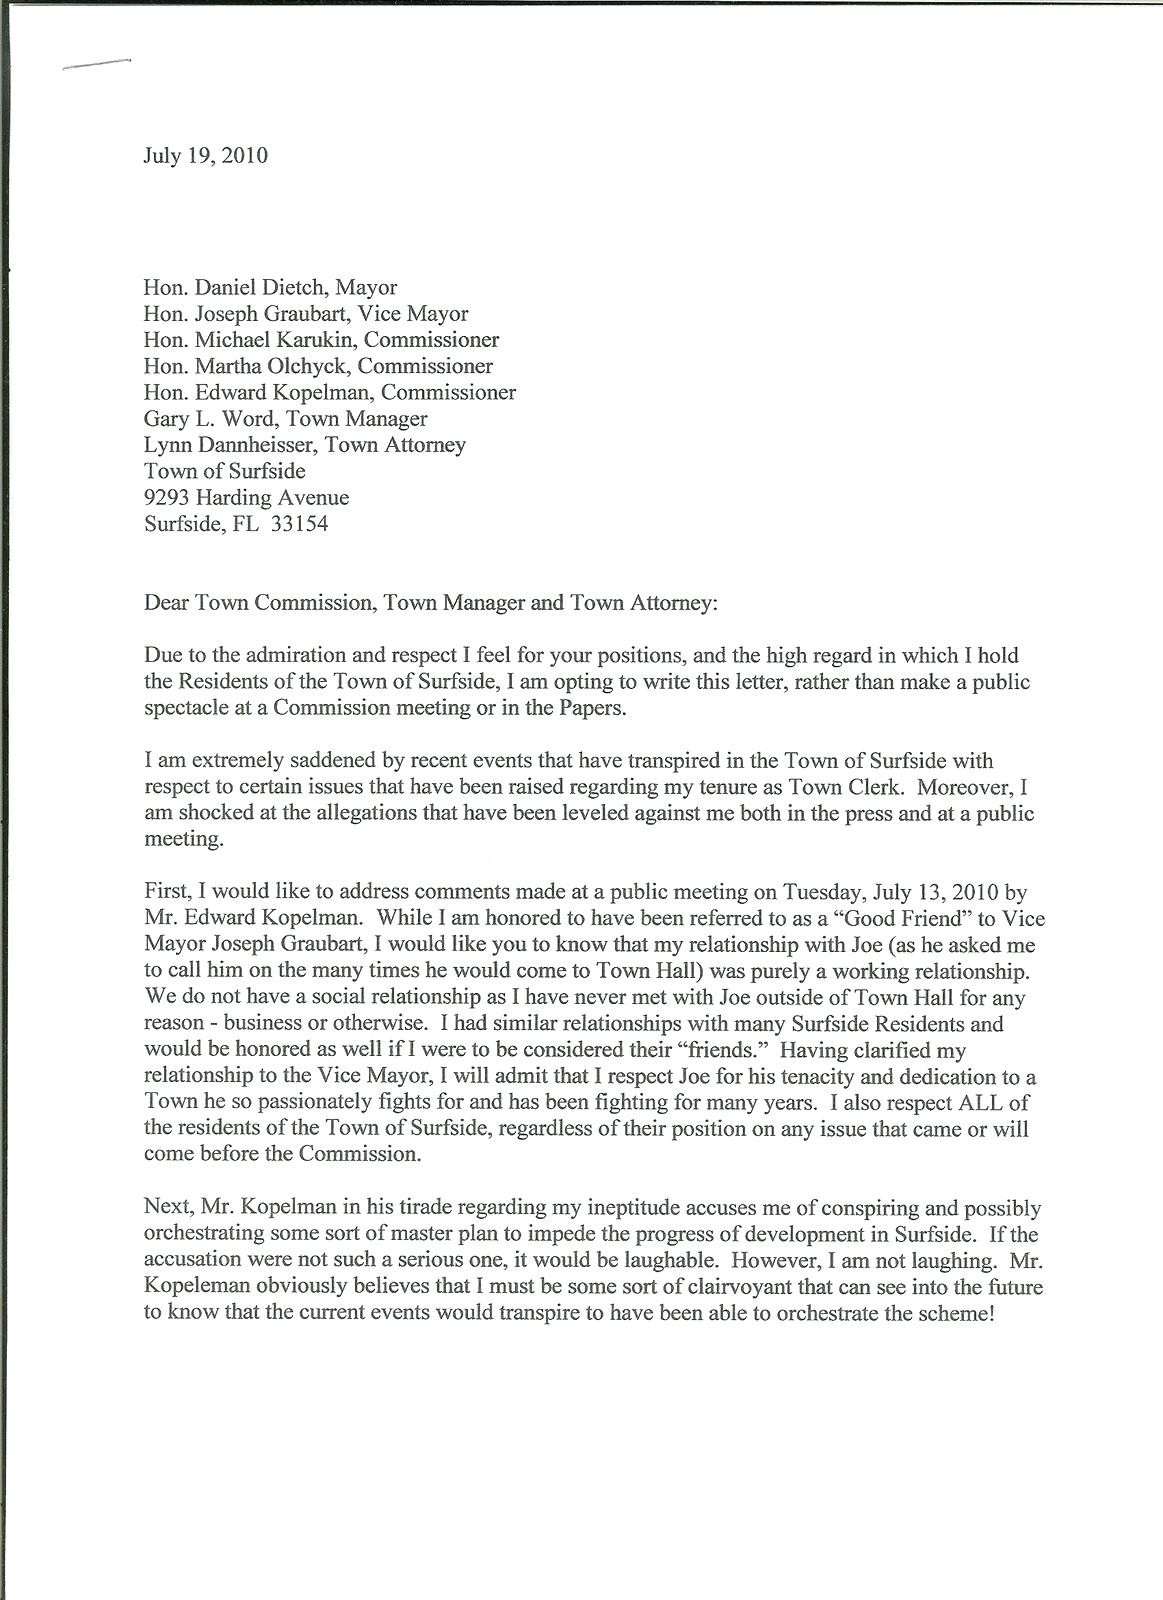 Free Cease and Desist Letter Template for Harassment - Cease and Desist Letter Harassment Template Defamation who Controls